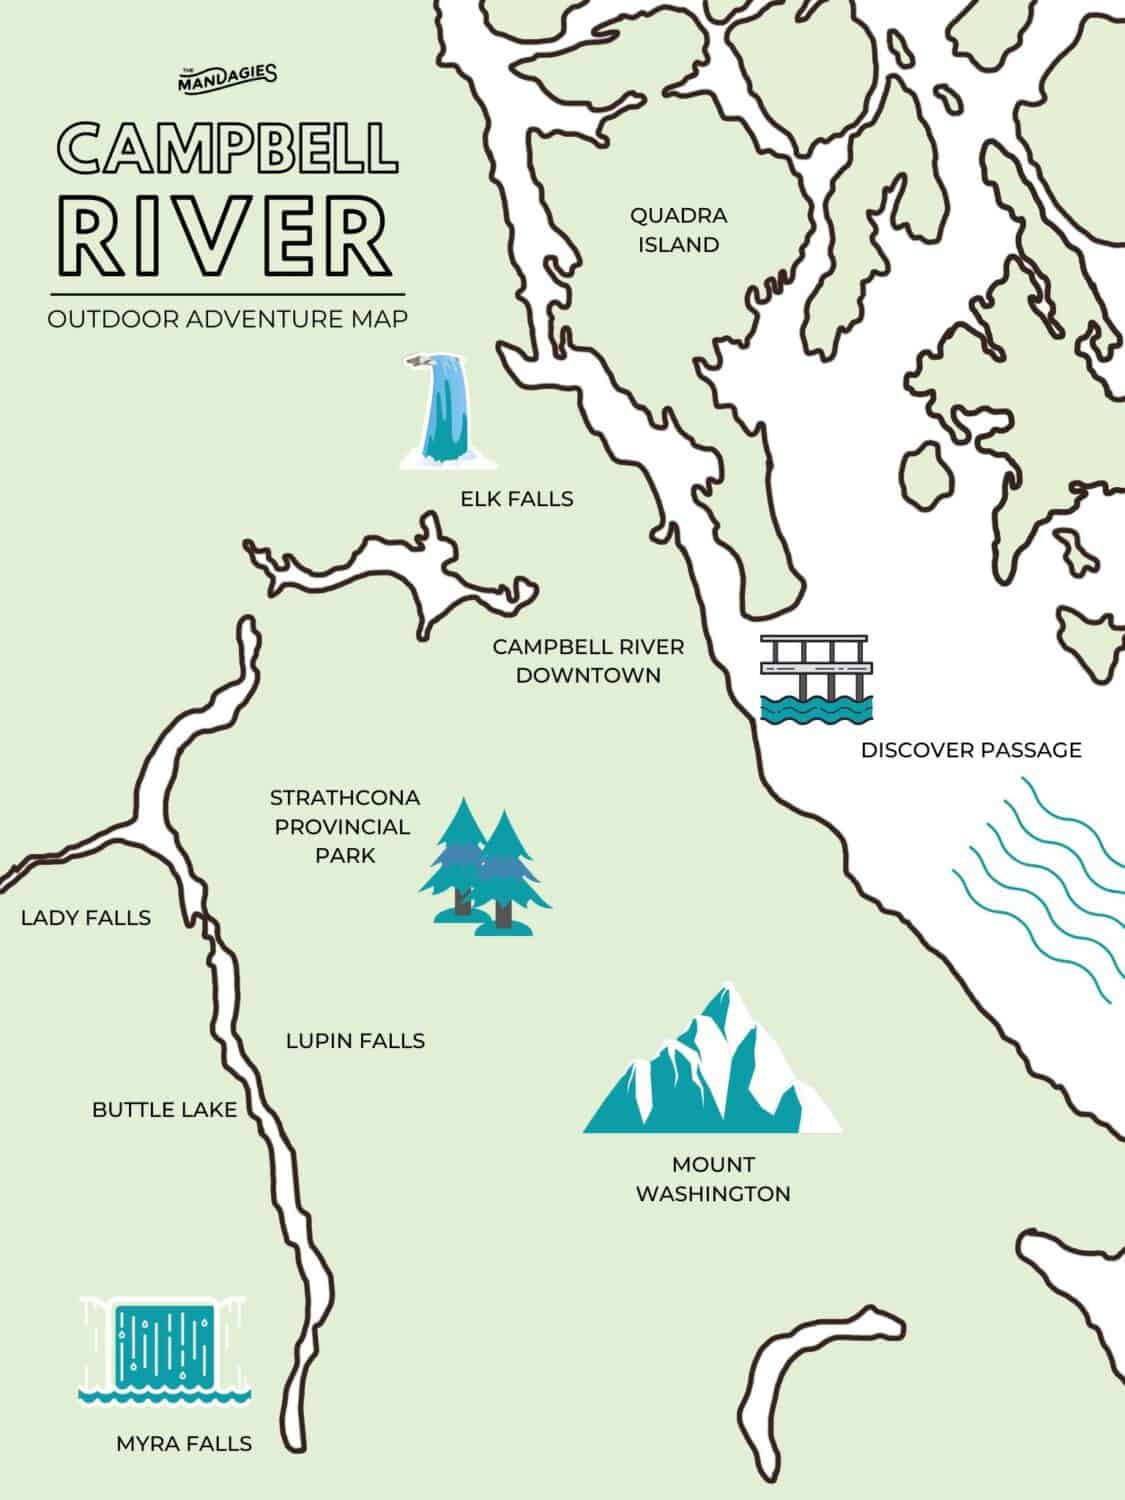 Things To Do In Campbell River Map - TheMandagies.com